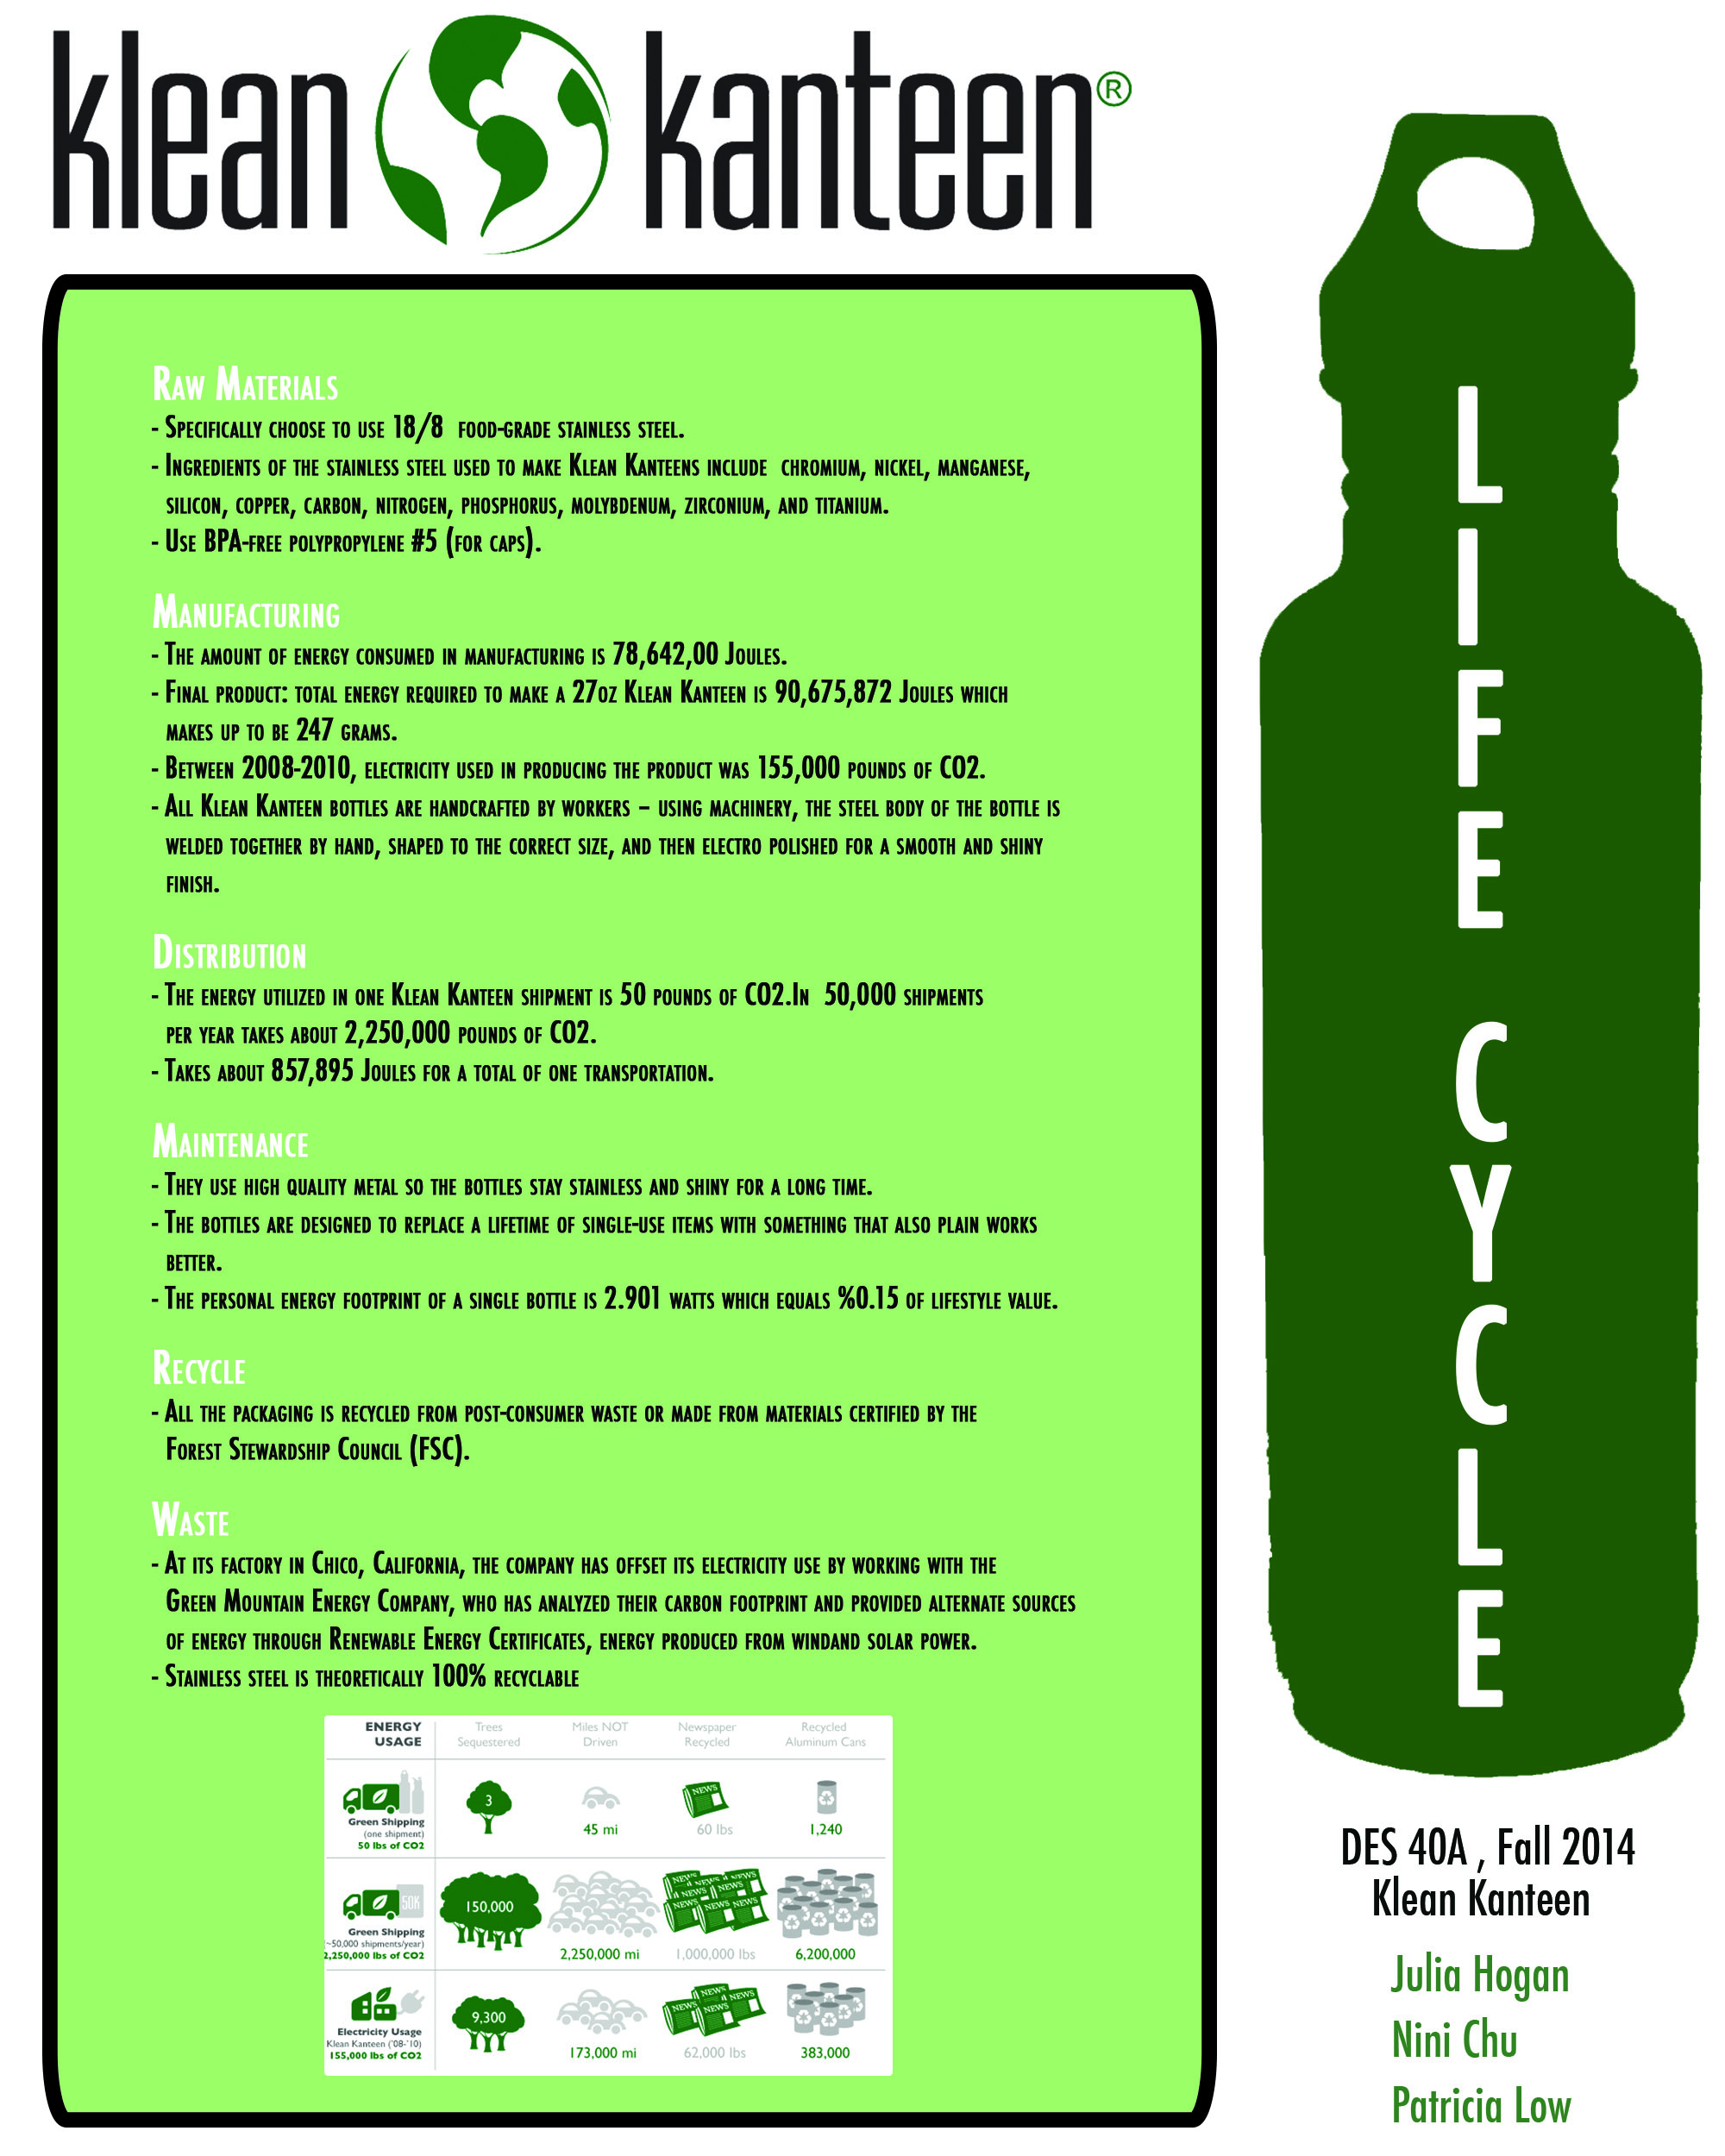 Klean Kanteen Life Cycle